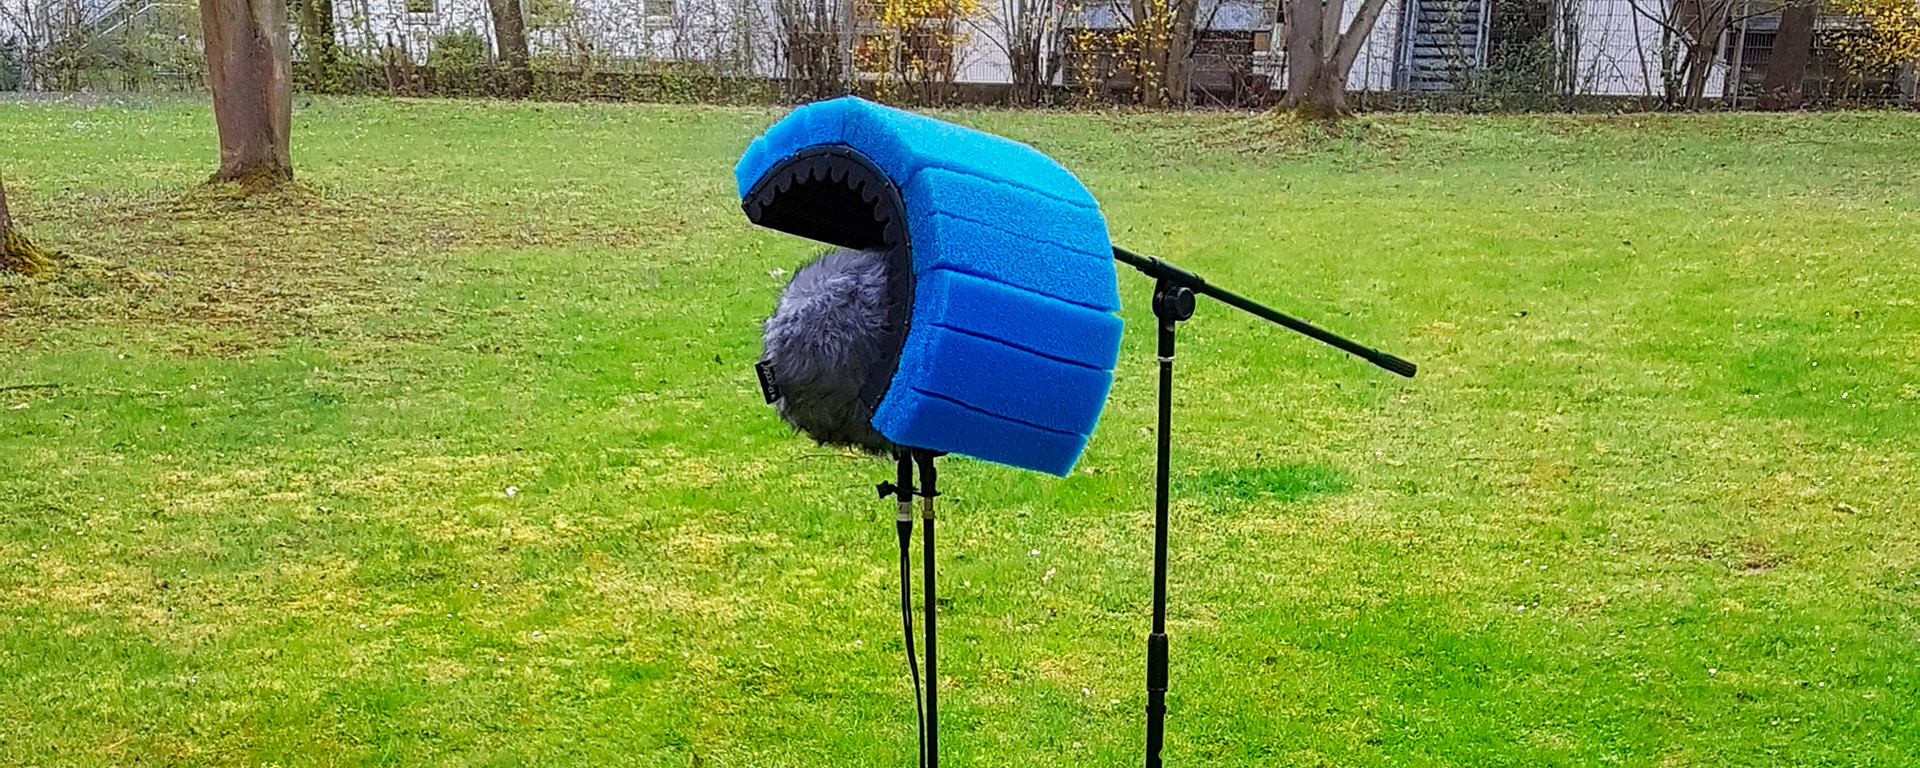 DIY raincover by Daniel Meuser